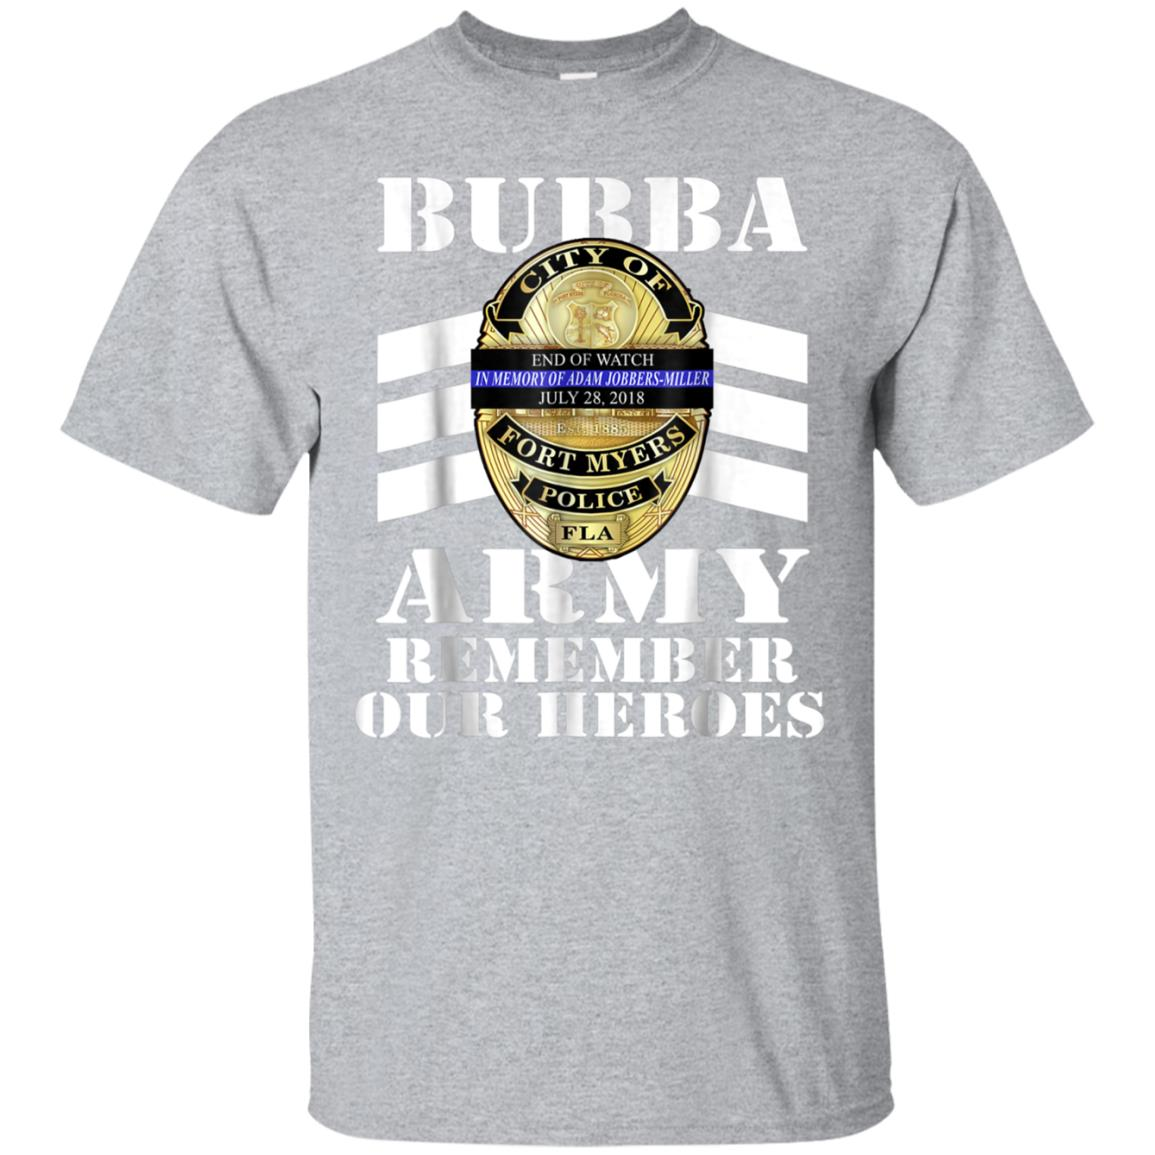 Bubba Army - Remember Our Heroes 99promocode